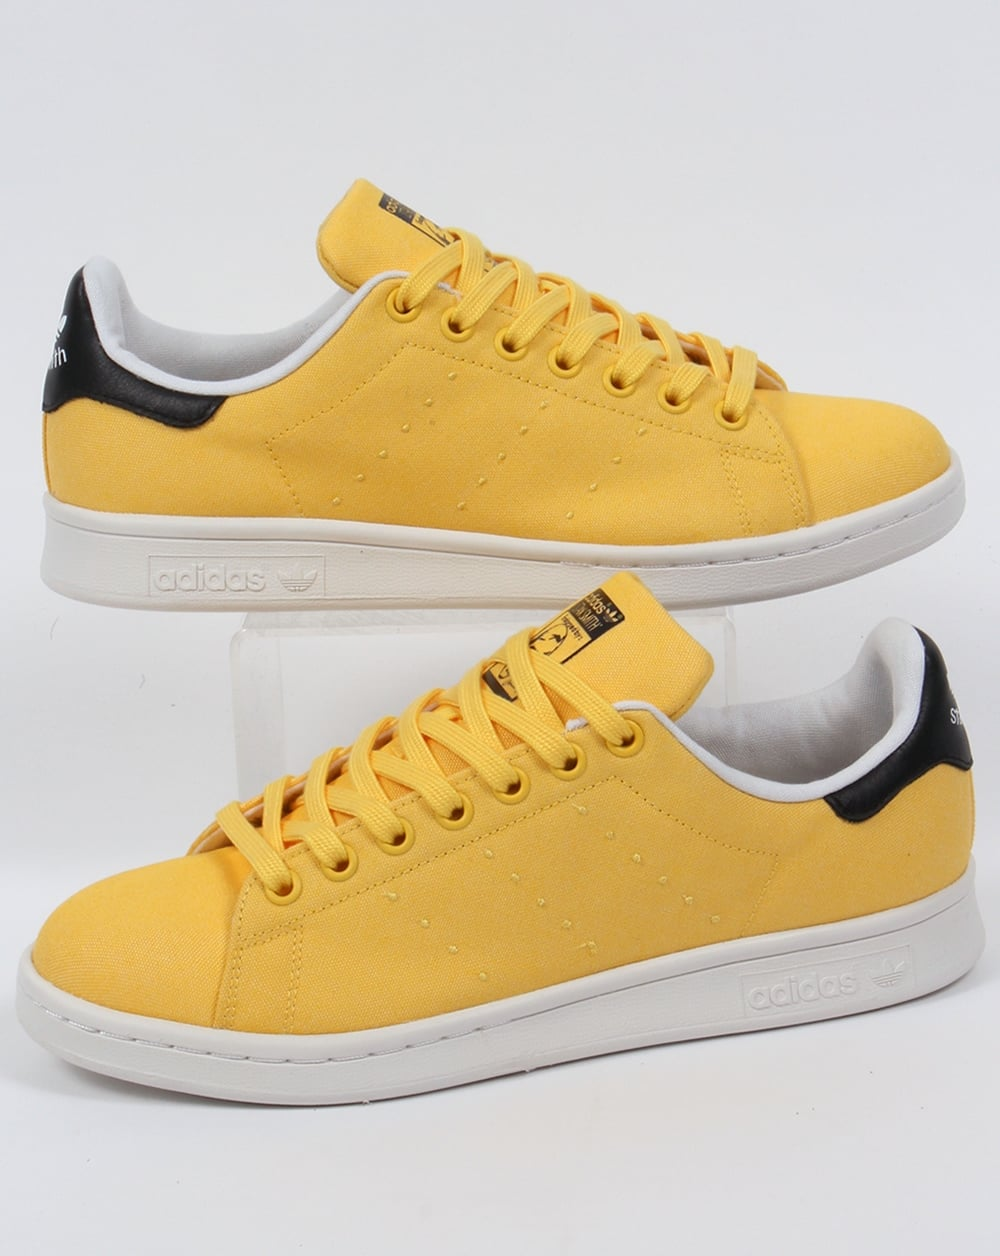 Adidas Stan Smith Black And Yellow